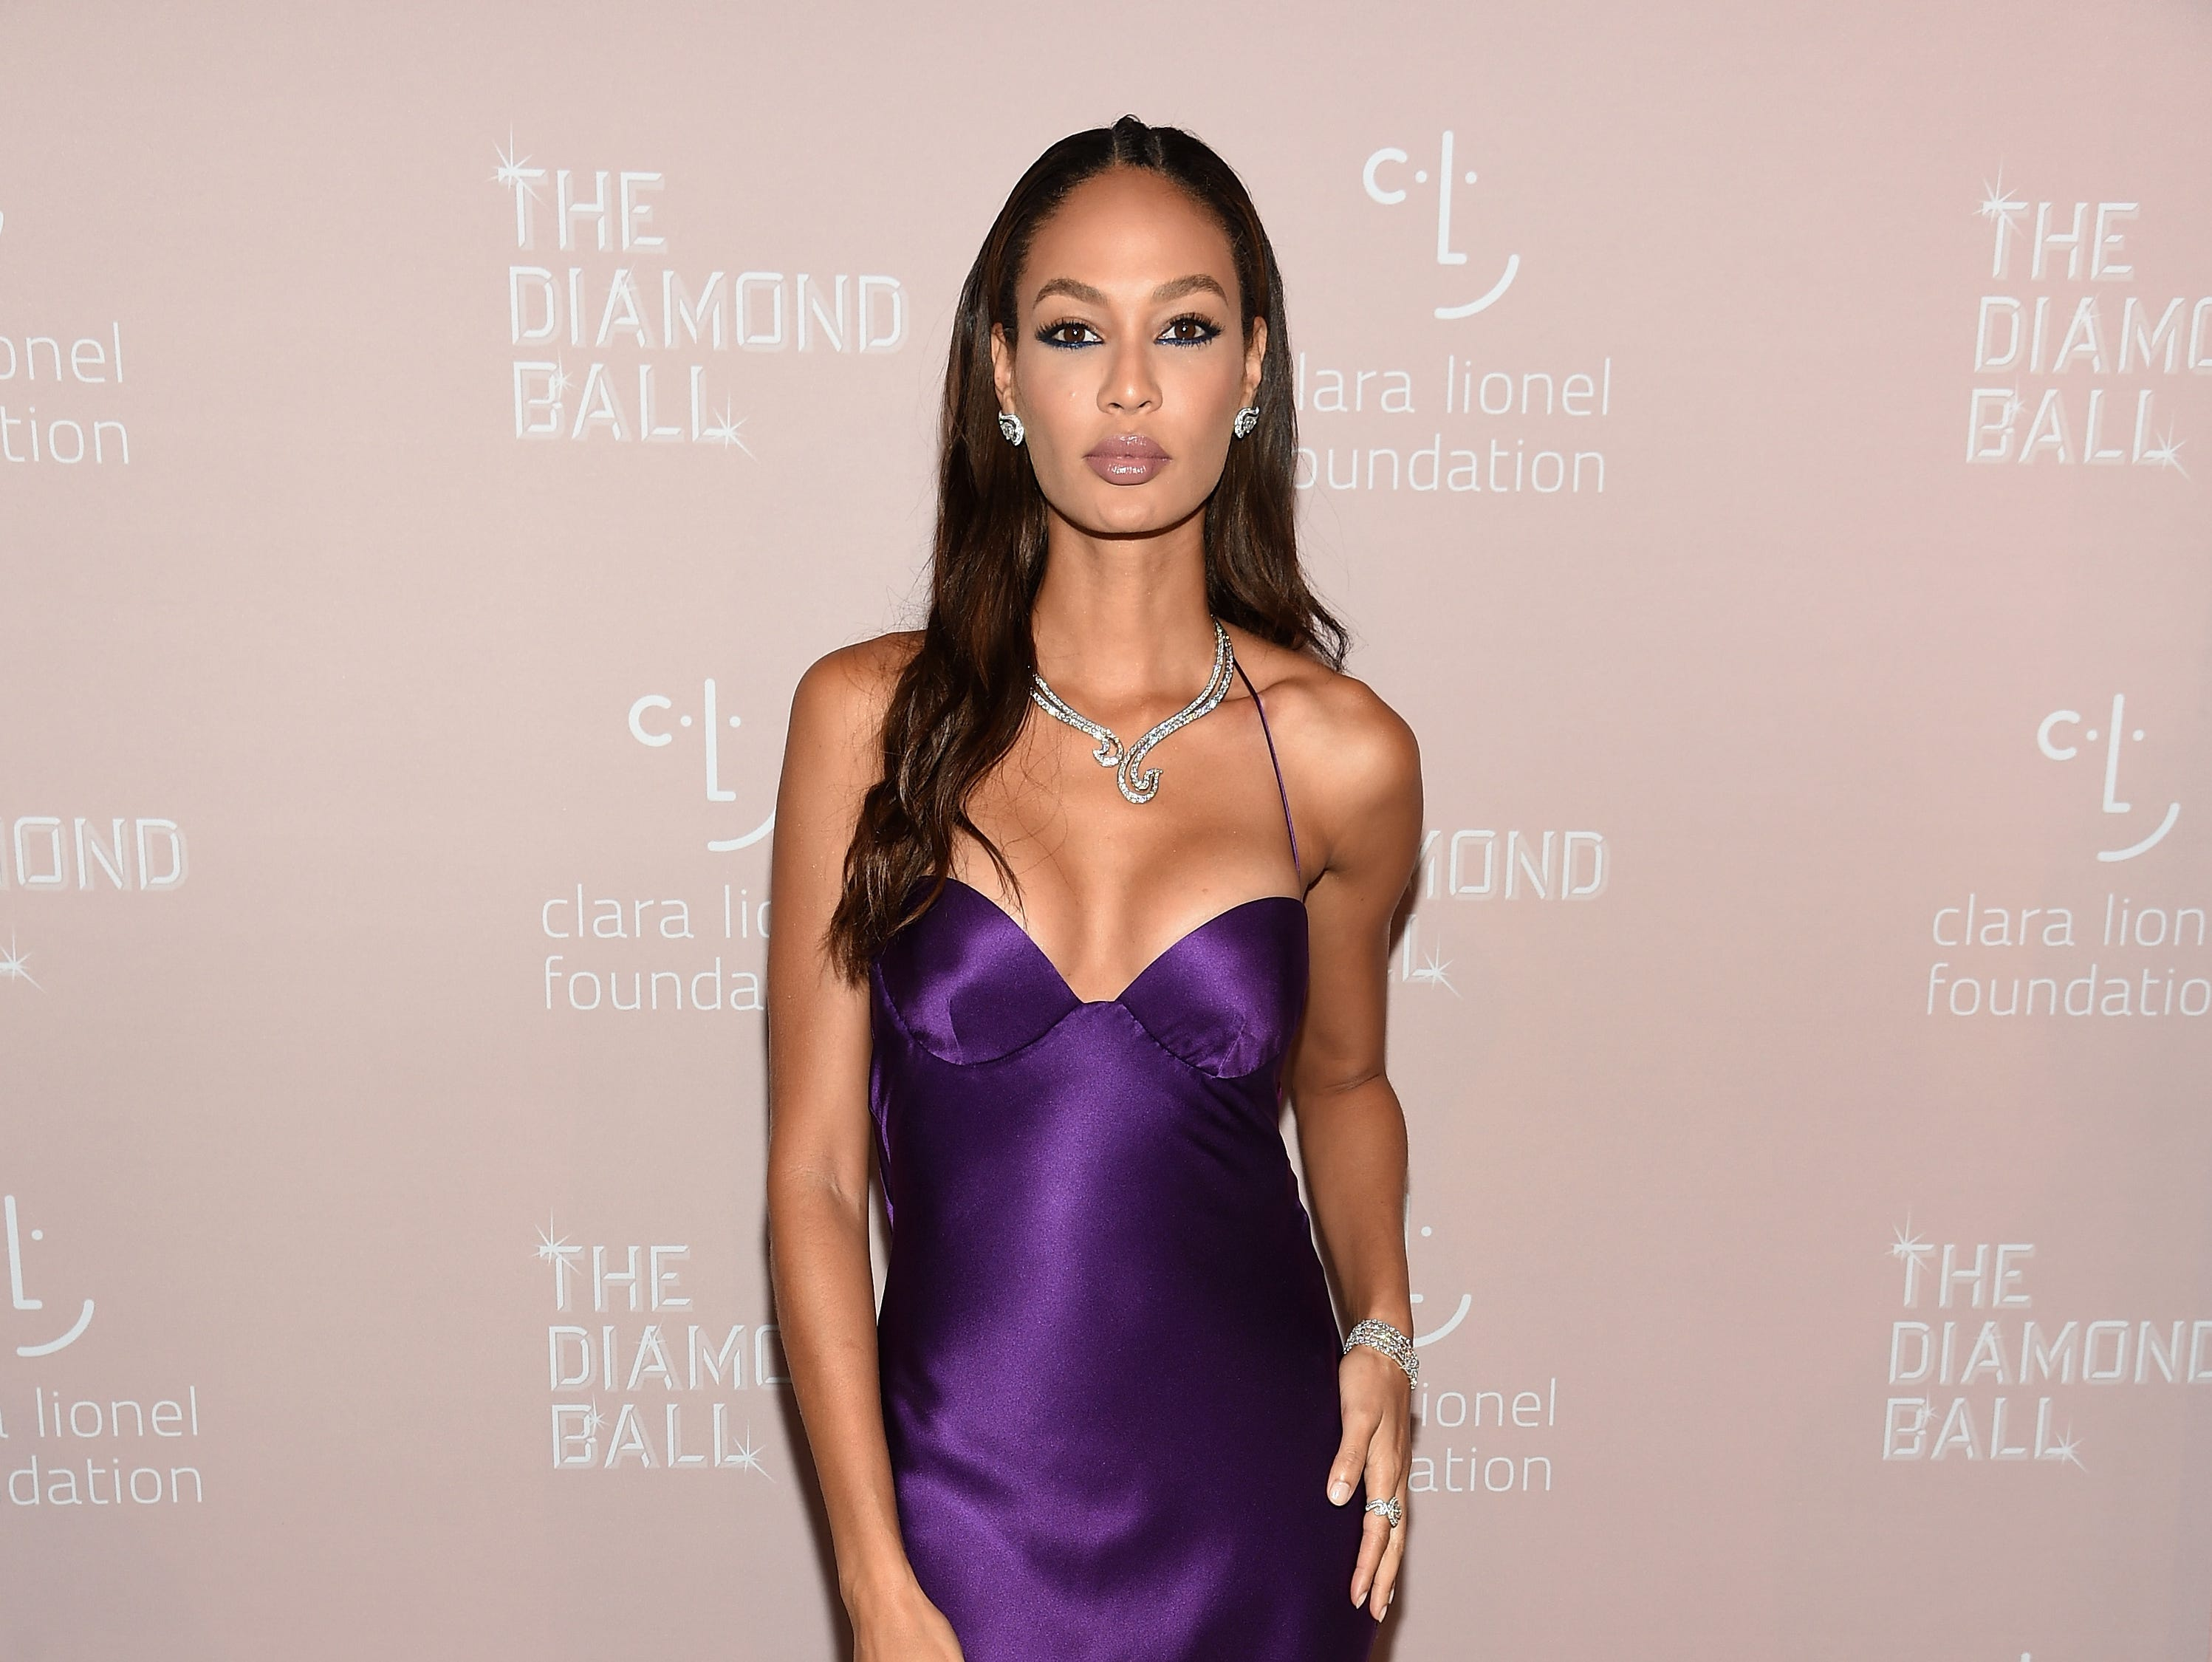 NEW YORK, NY - SEPTEMBER 13: Joan Smalls attends Rihanna's 4th Annual Diamond Ball benefitting The Clara Lionel Foundation at Cipriani Wall Street on September 13, 2018 in New York City.  (Photo by Dimitrios Kambouris/Getty Images for Diamond Ball) ORG XMIT: 775197456 ORIG FILE ID: 1032932934